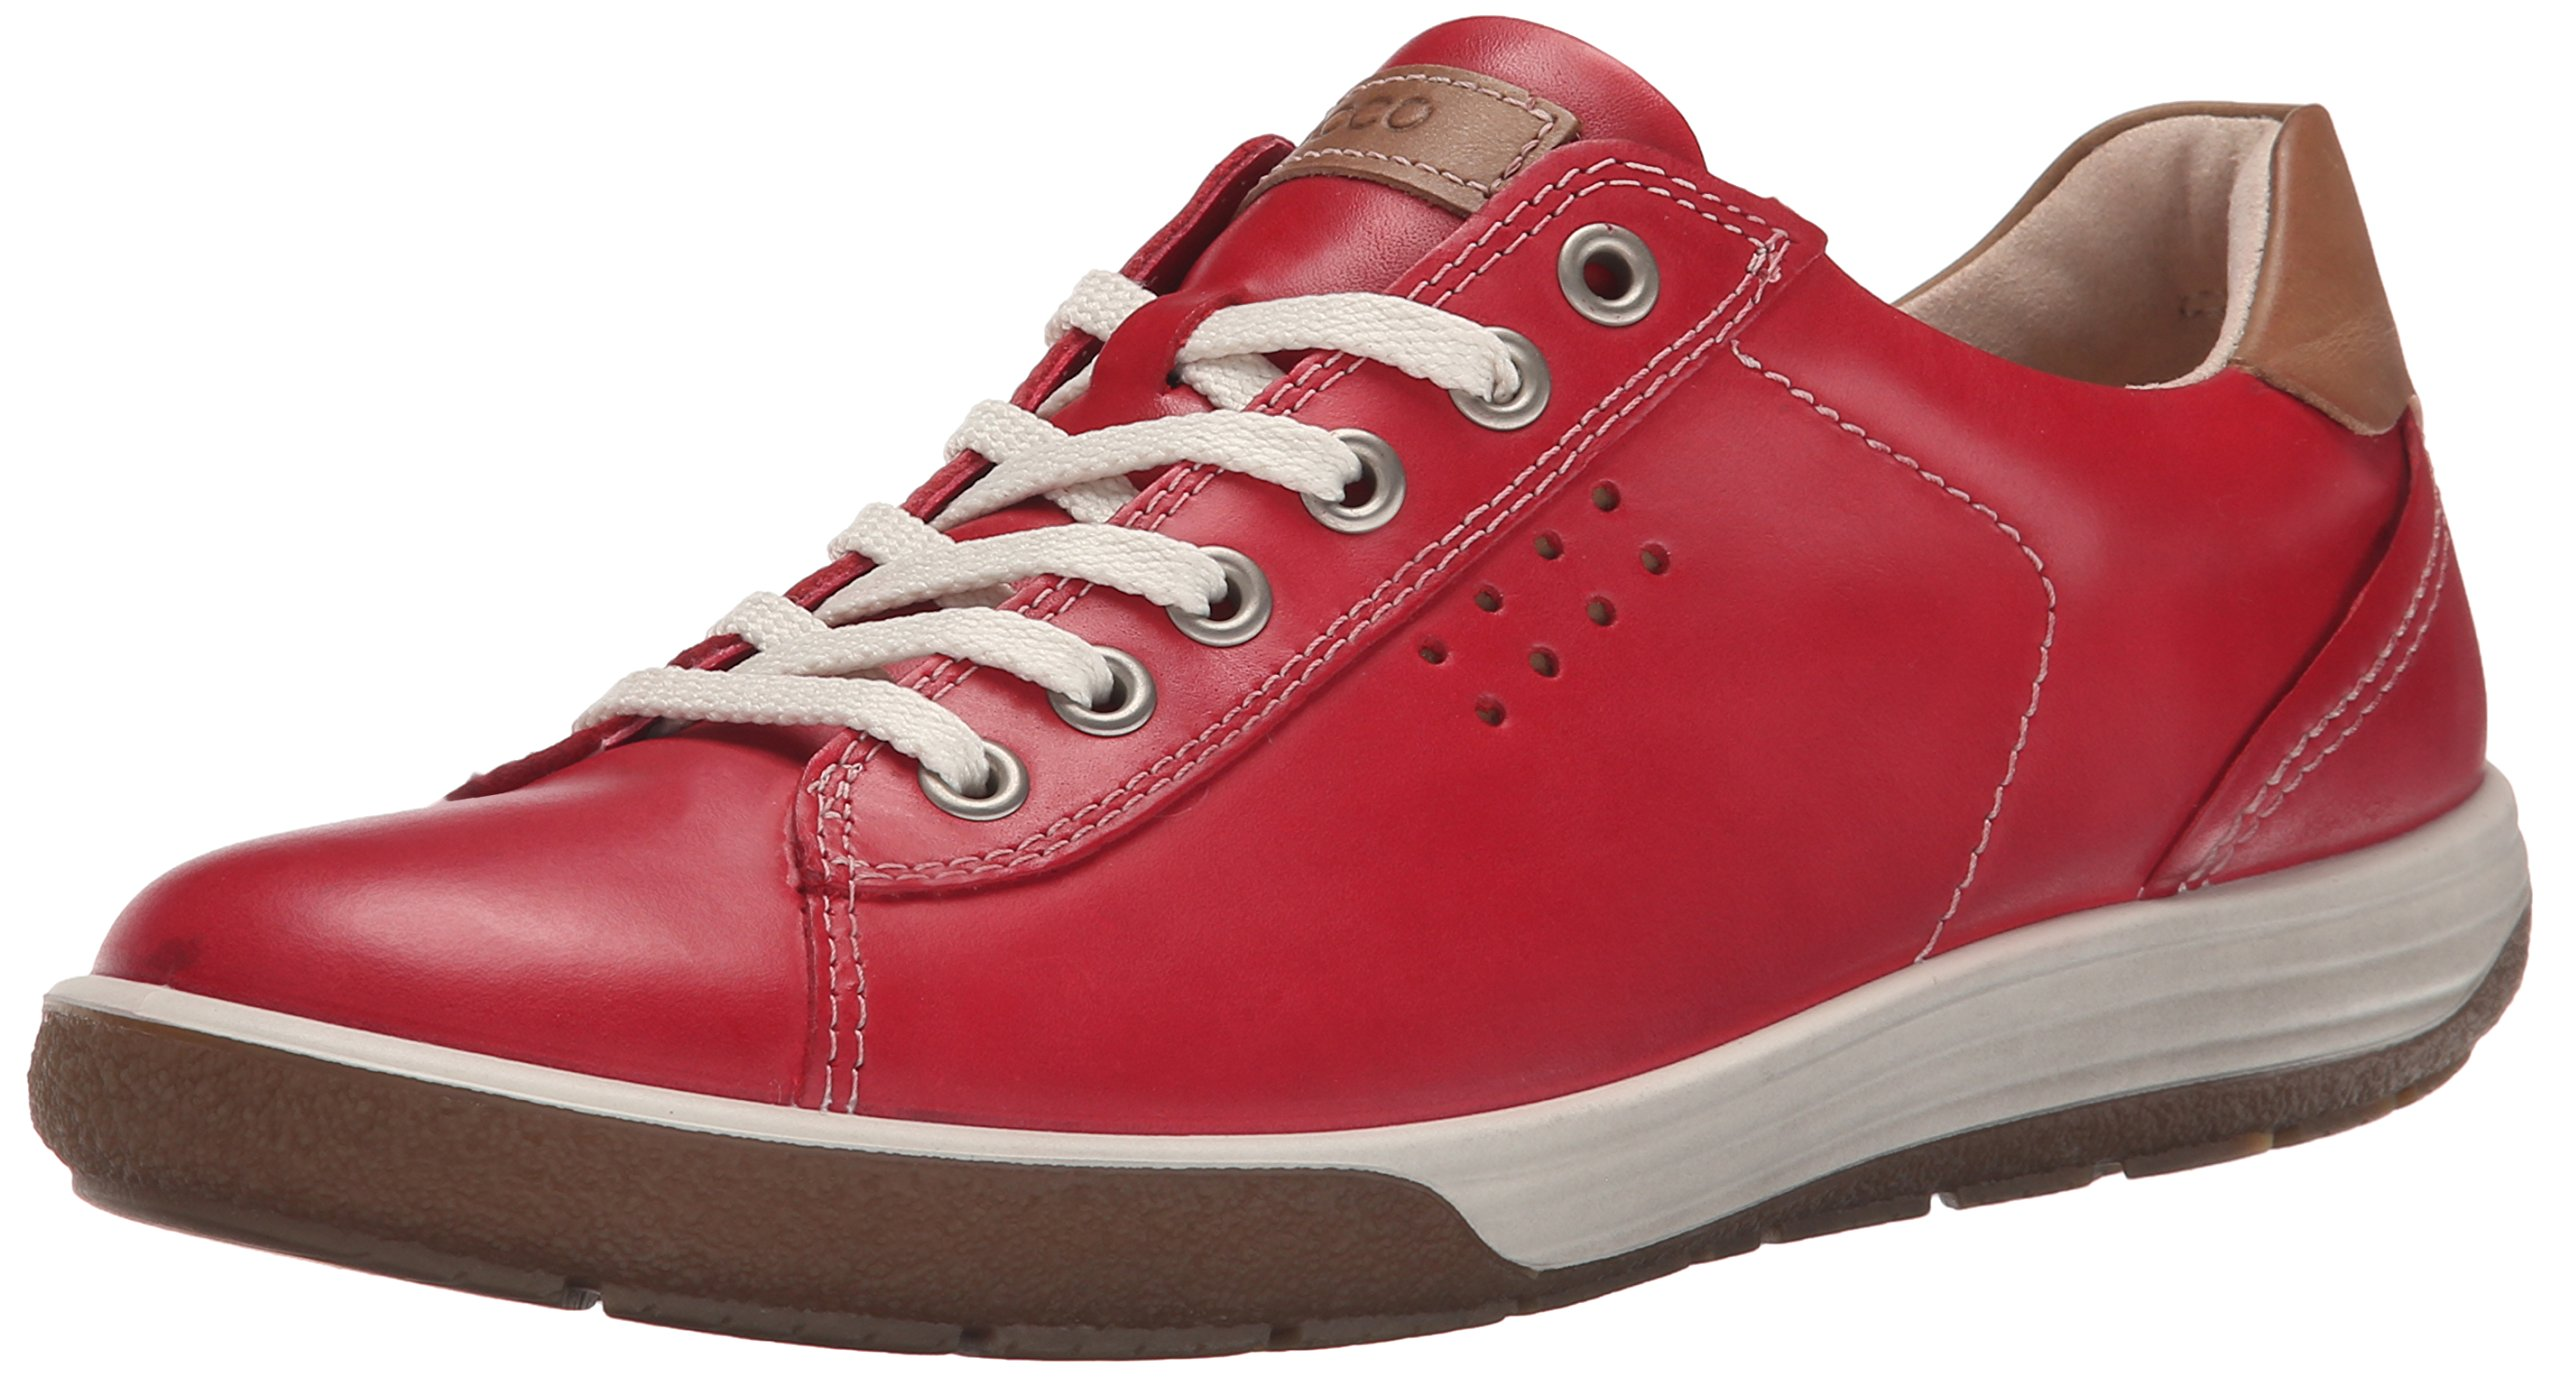 ECCO Footwear Womens Chase Tie Sneaker, Chilli Red, 39 EU/8-8.5 M US by ECCO (Image #1)